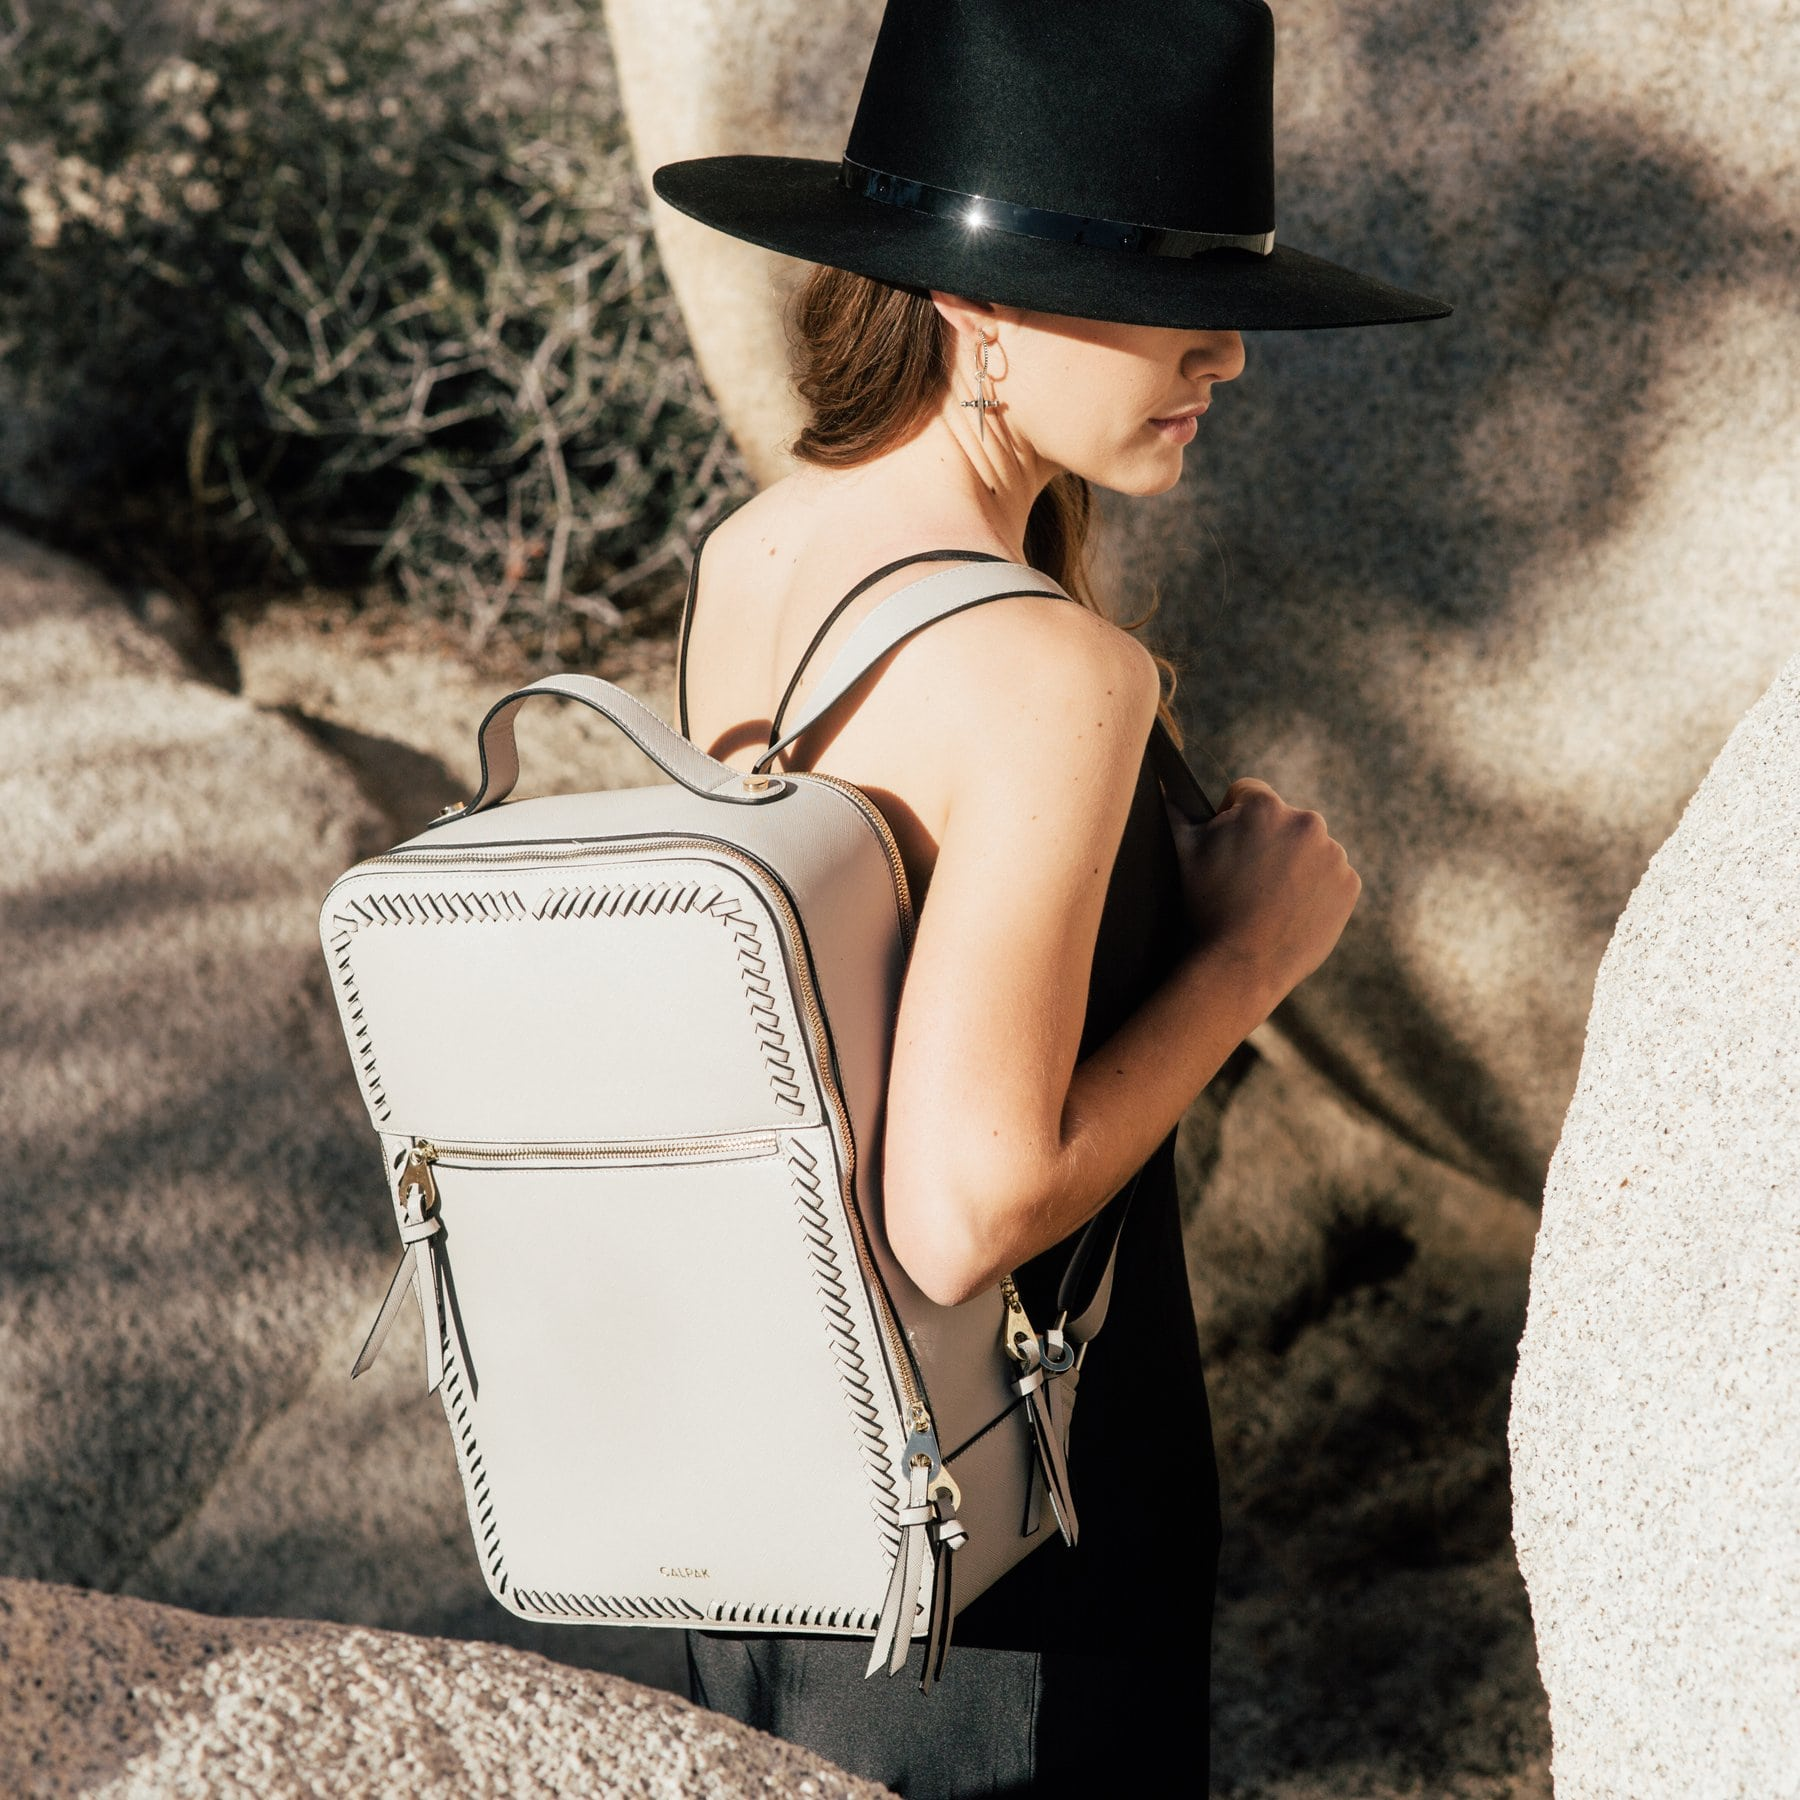 A woman stands in between boulders wearing a black hat and white backpack